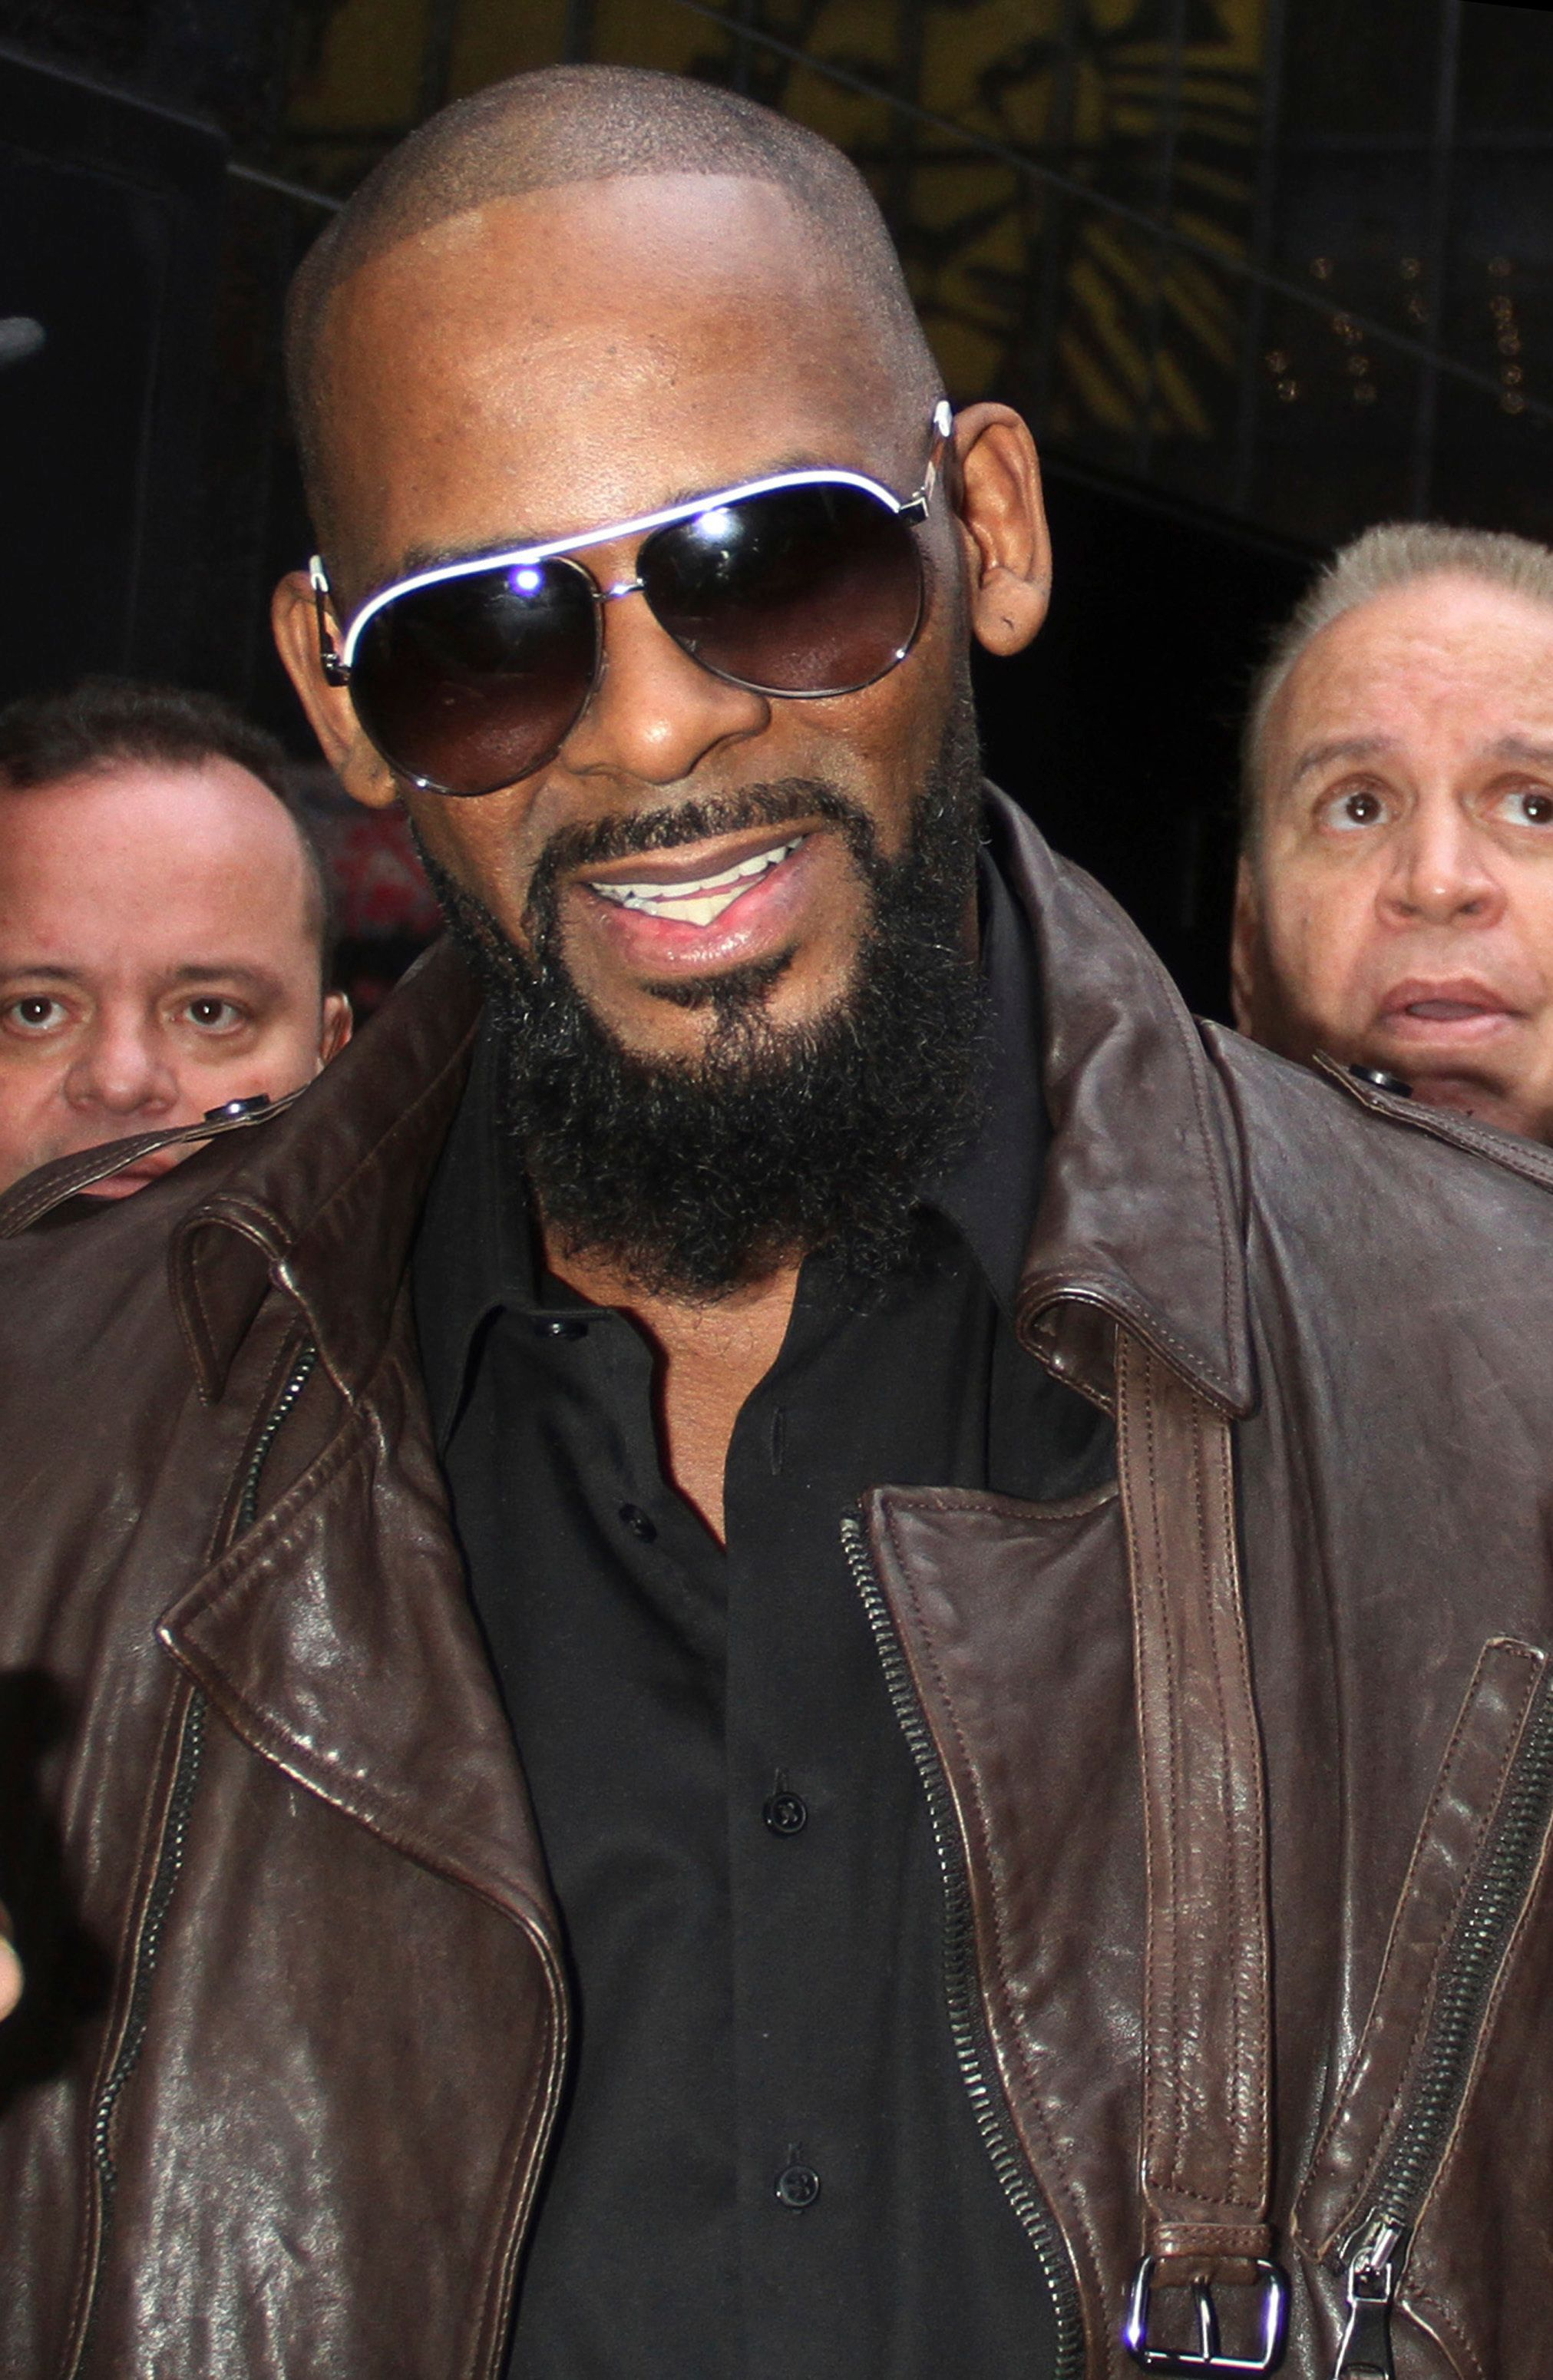 NEW YORK, NY - DECEMBER 21: R. Kelly at ABC's Good Morning America in New York City on December 21, 2015. Credit: RW/MediaPunch /IPX